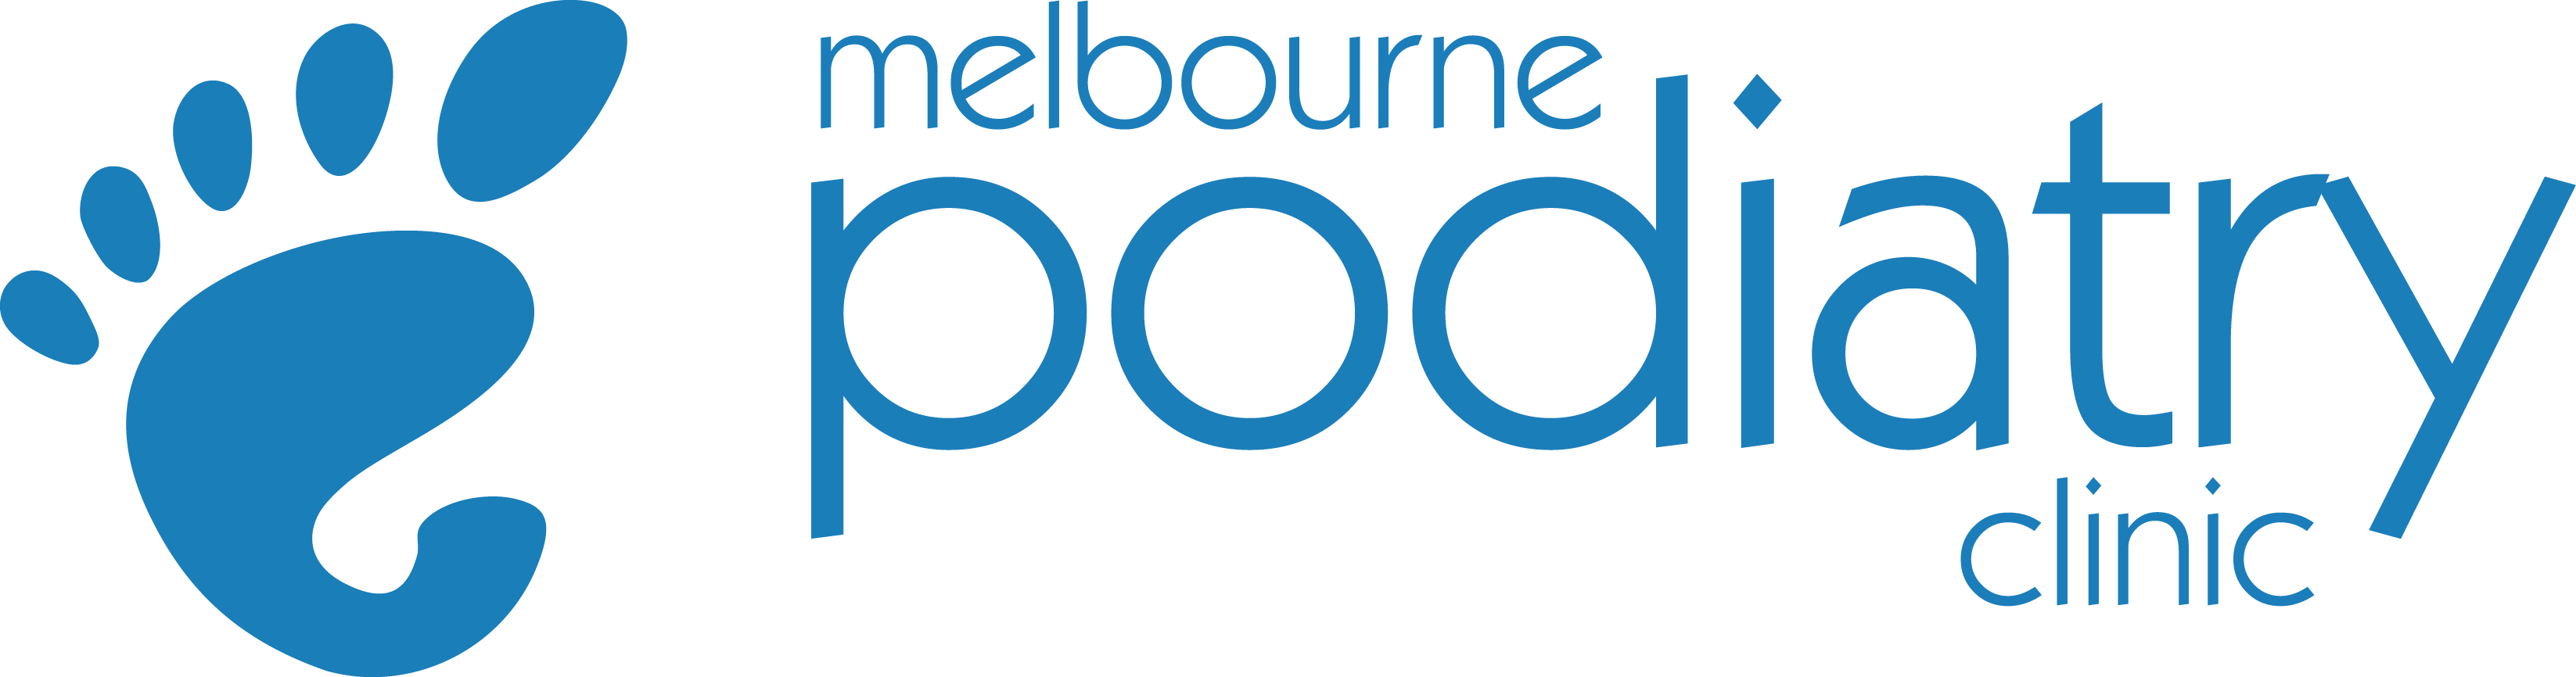 Melbourne Podiatrists Clinic